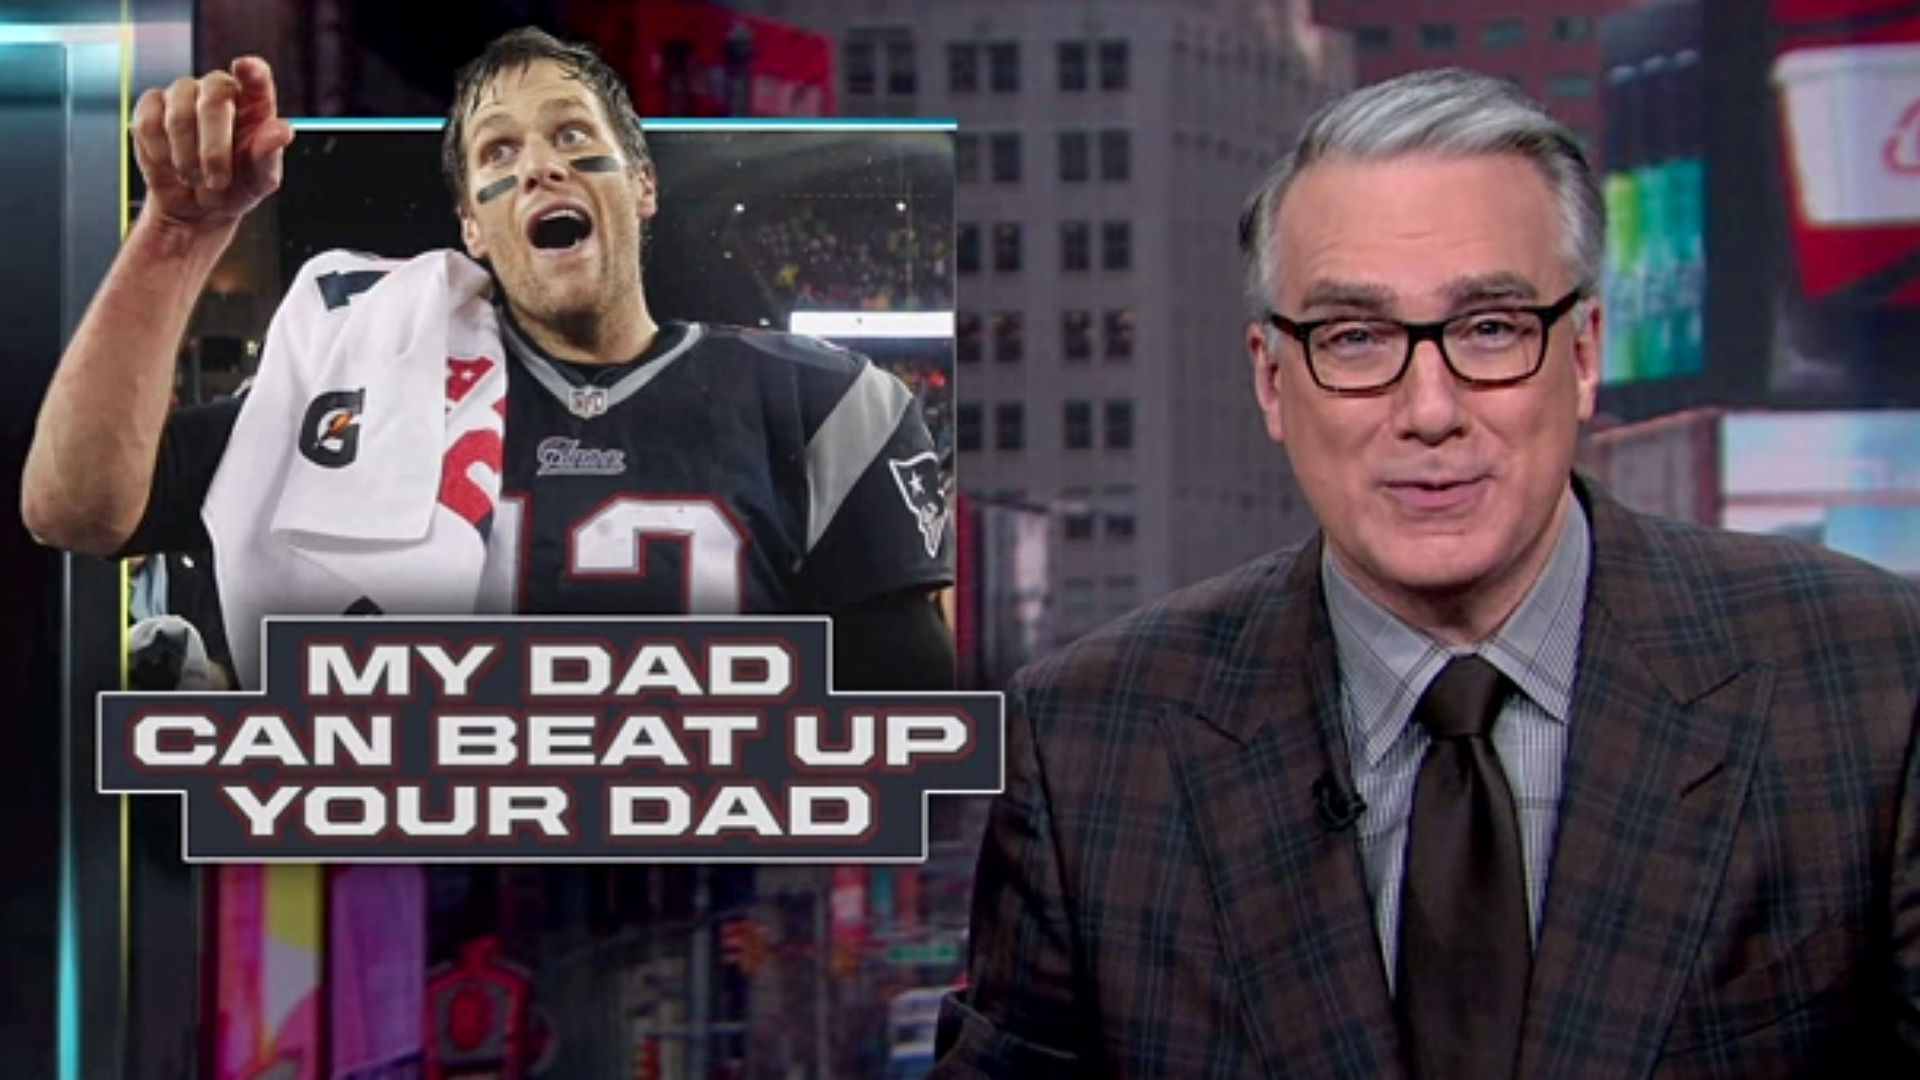 ESPN wants Keith Olbermann to let up on Goodell, NFL, report says